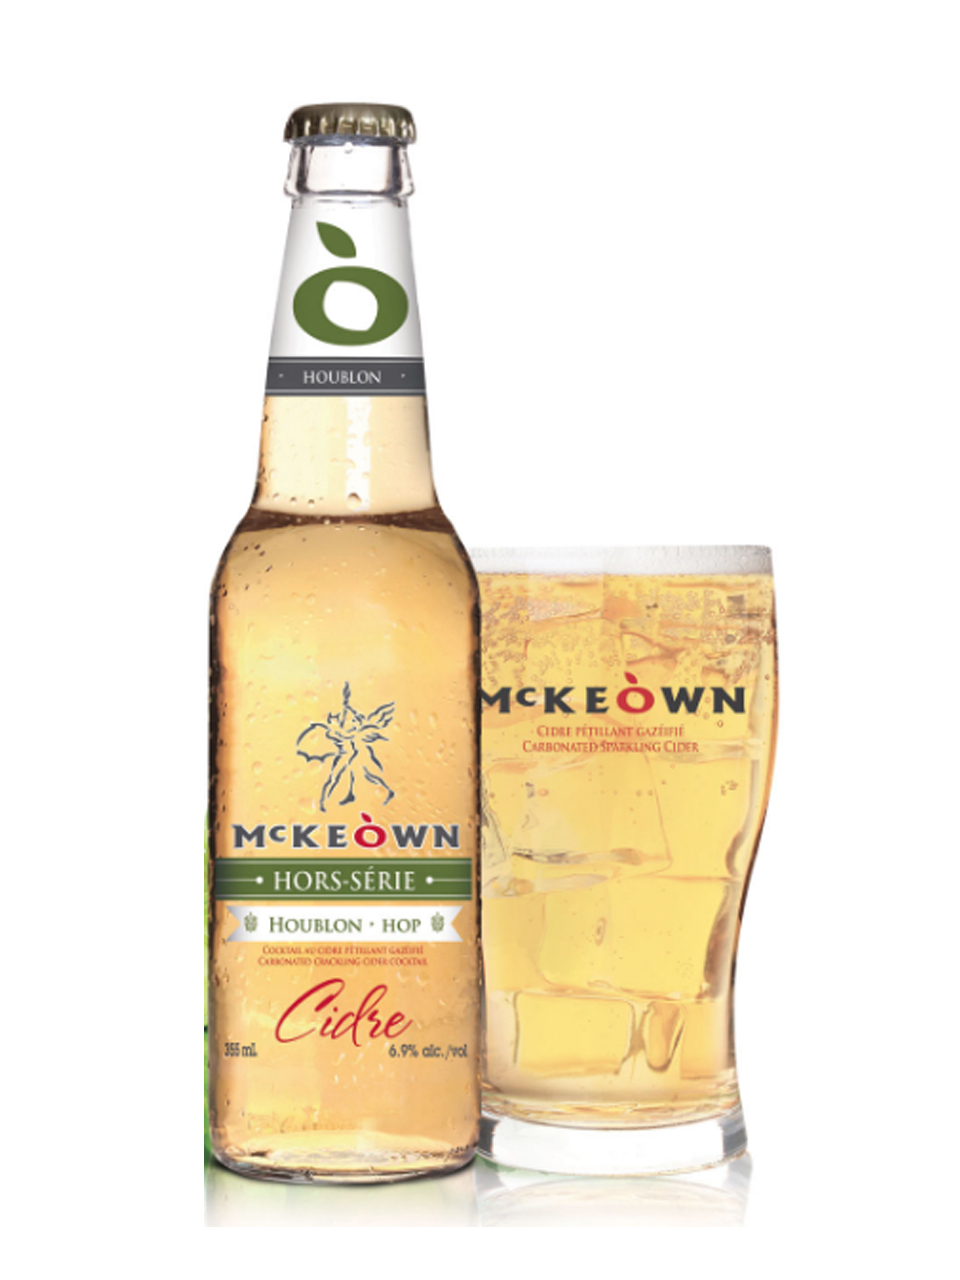 McKeown Hopped Cider